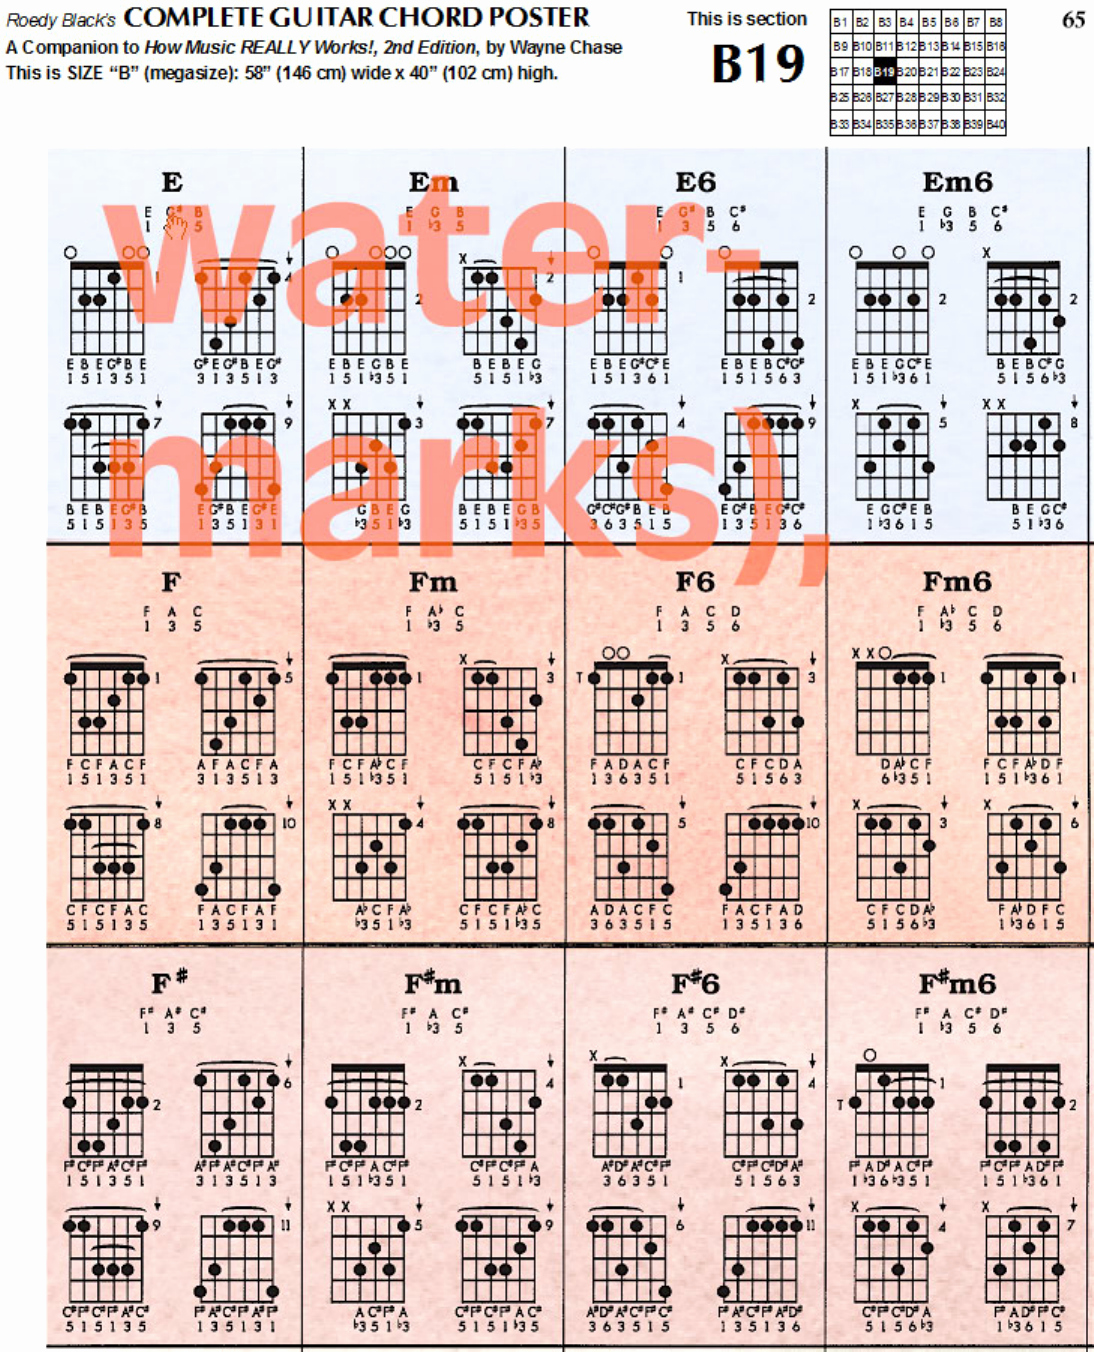 Chord Chart Guitar Complete Best Of Download Plete Guitar Chord Chart Template for Free